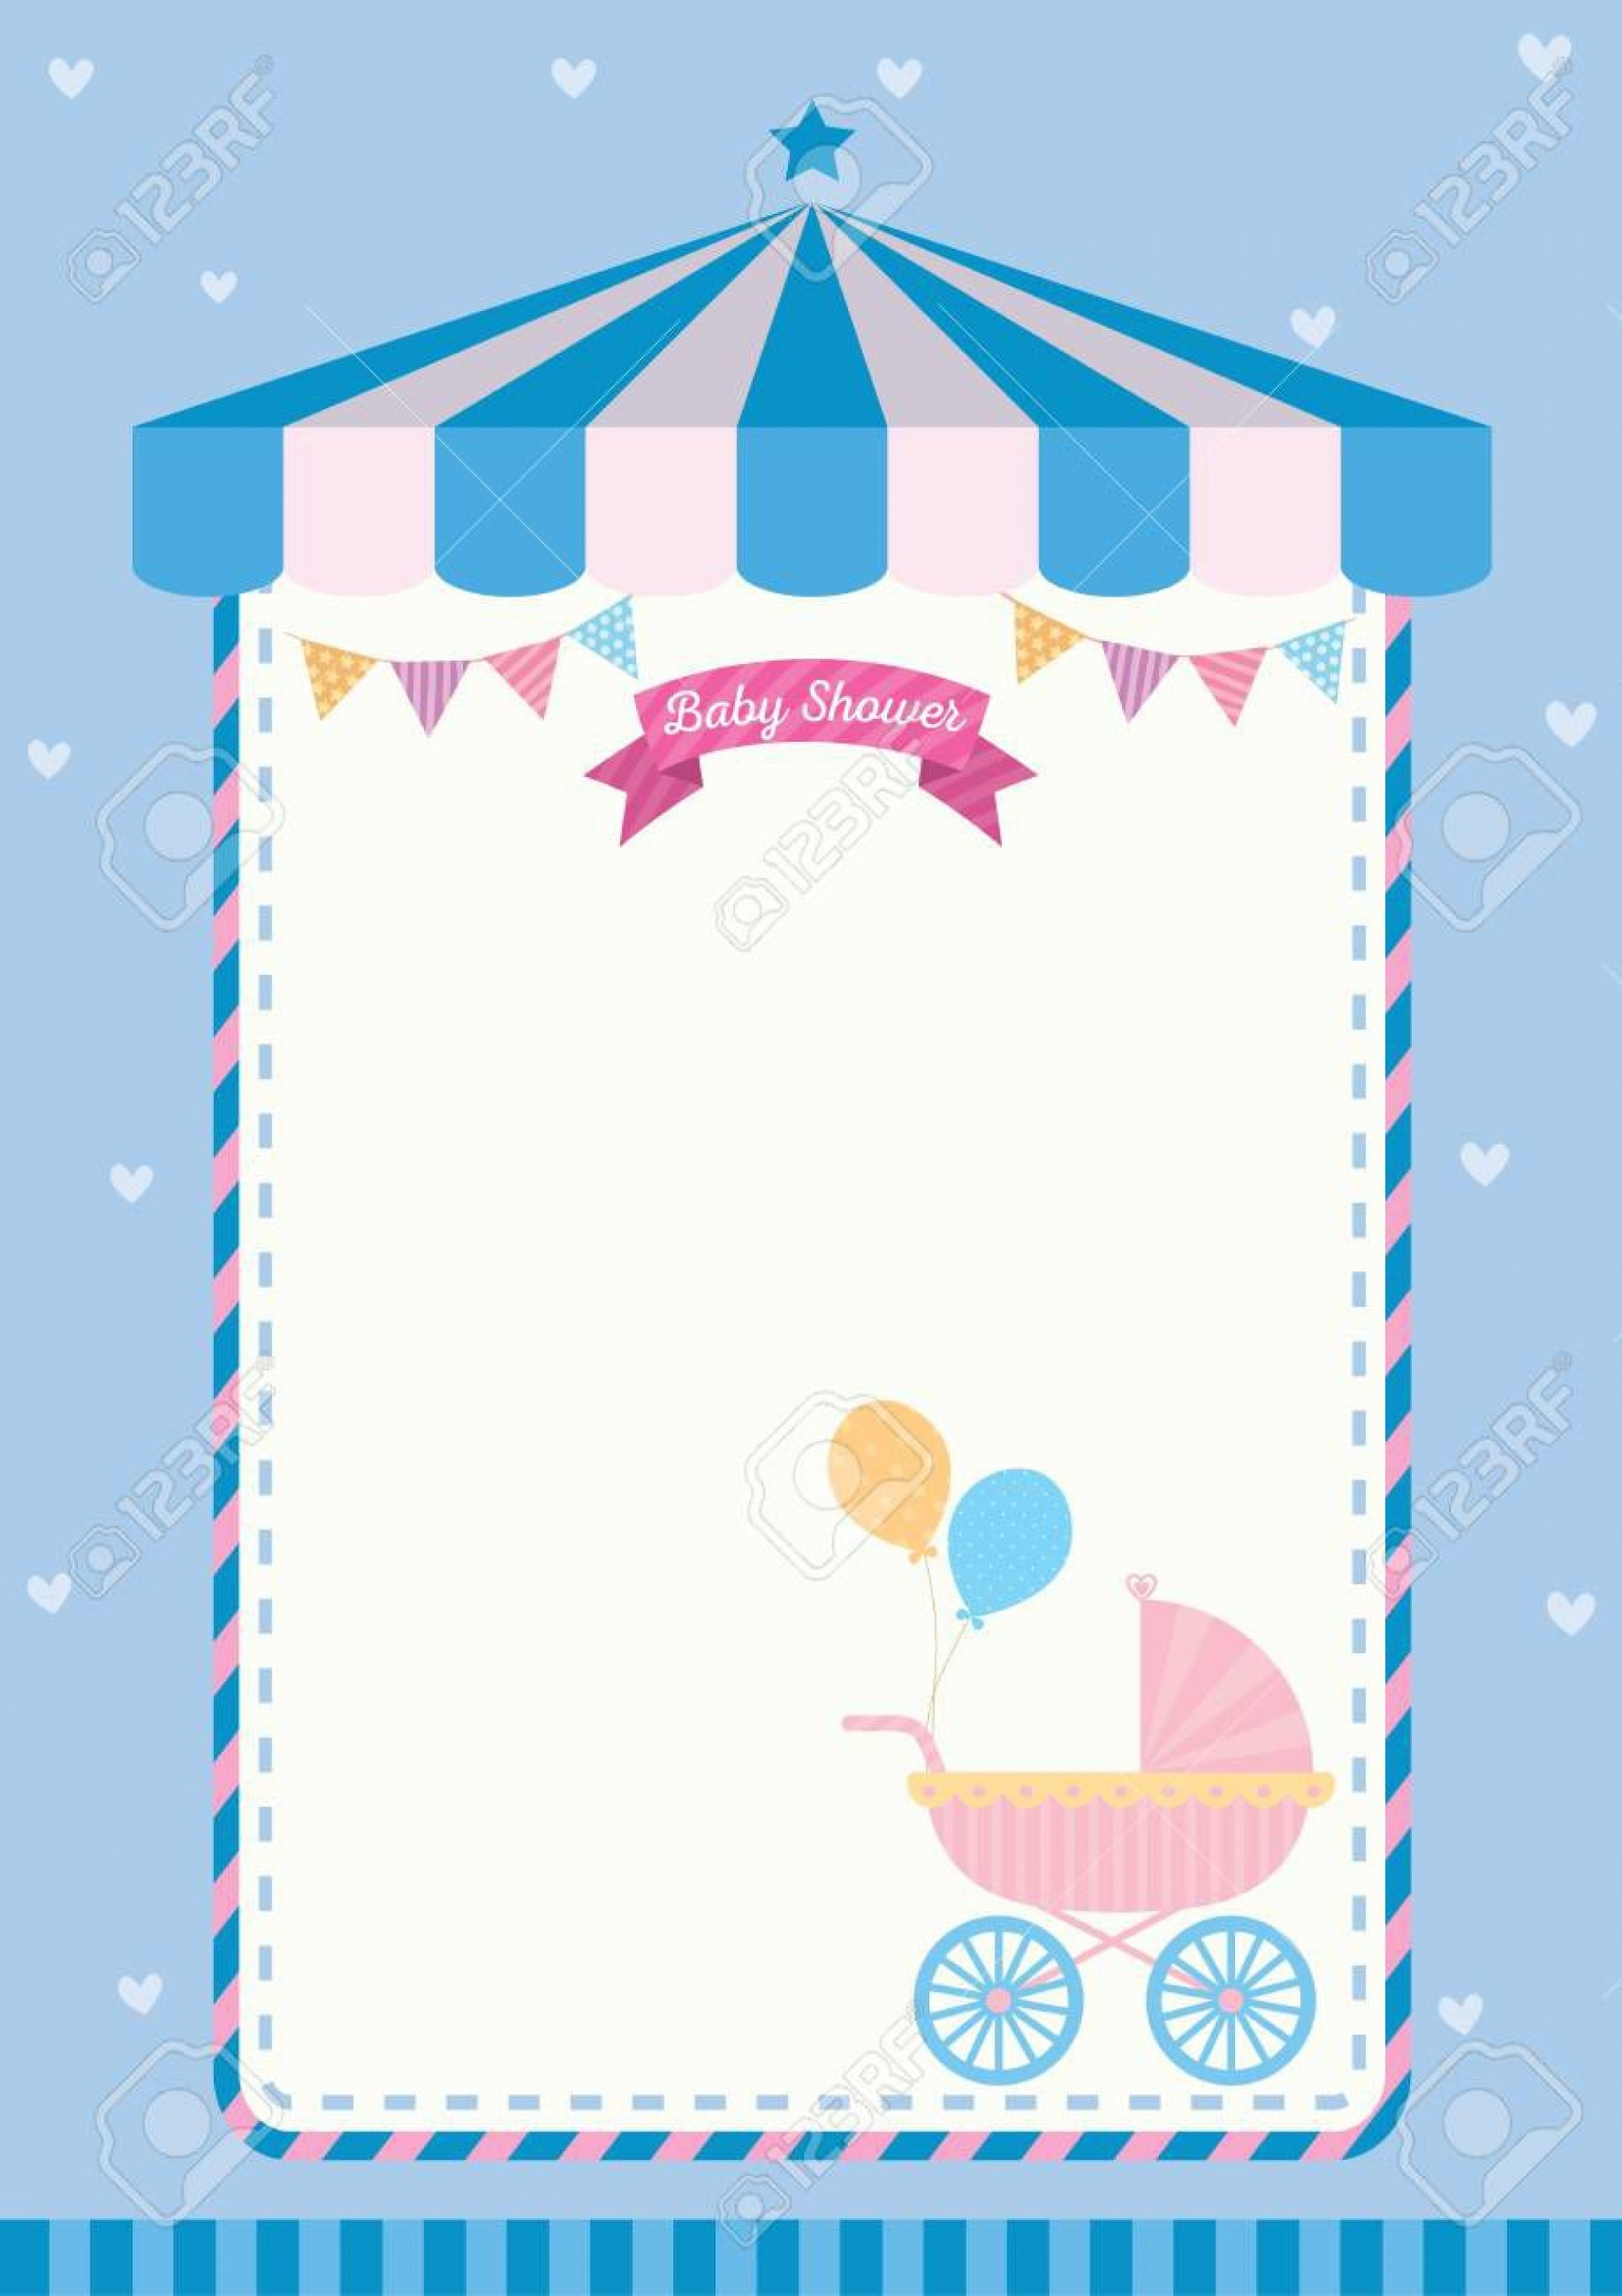 004 Beautiful Baby Shower Card Template Concept  Microsoft Word Invitation Design Online Printable Free1920